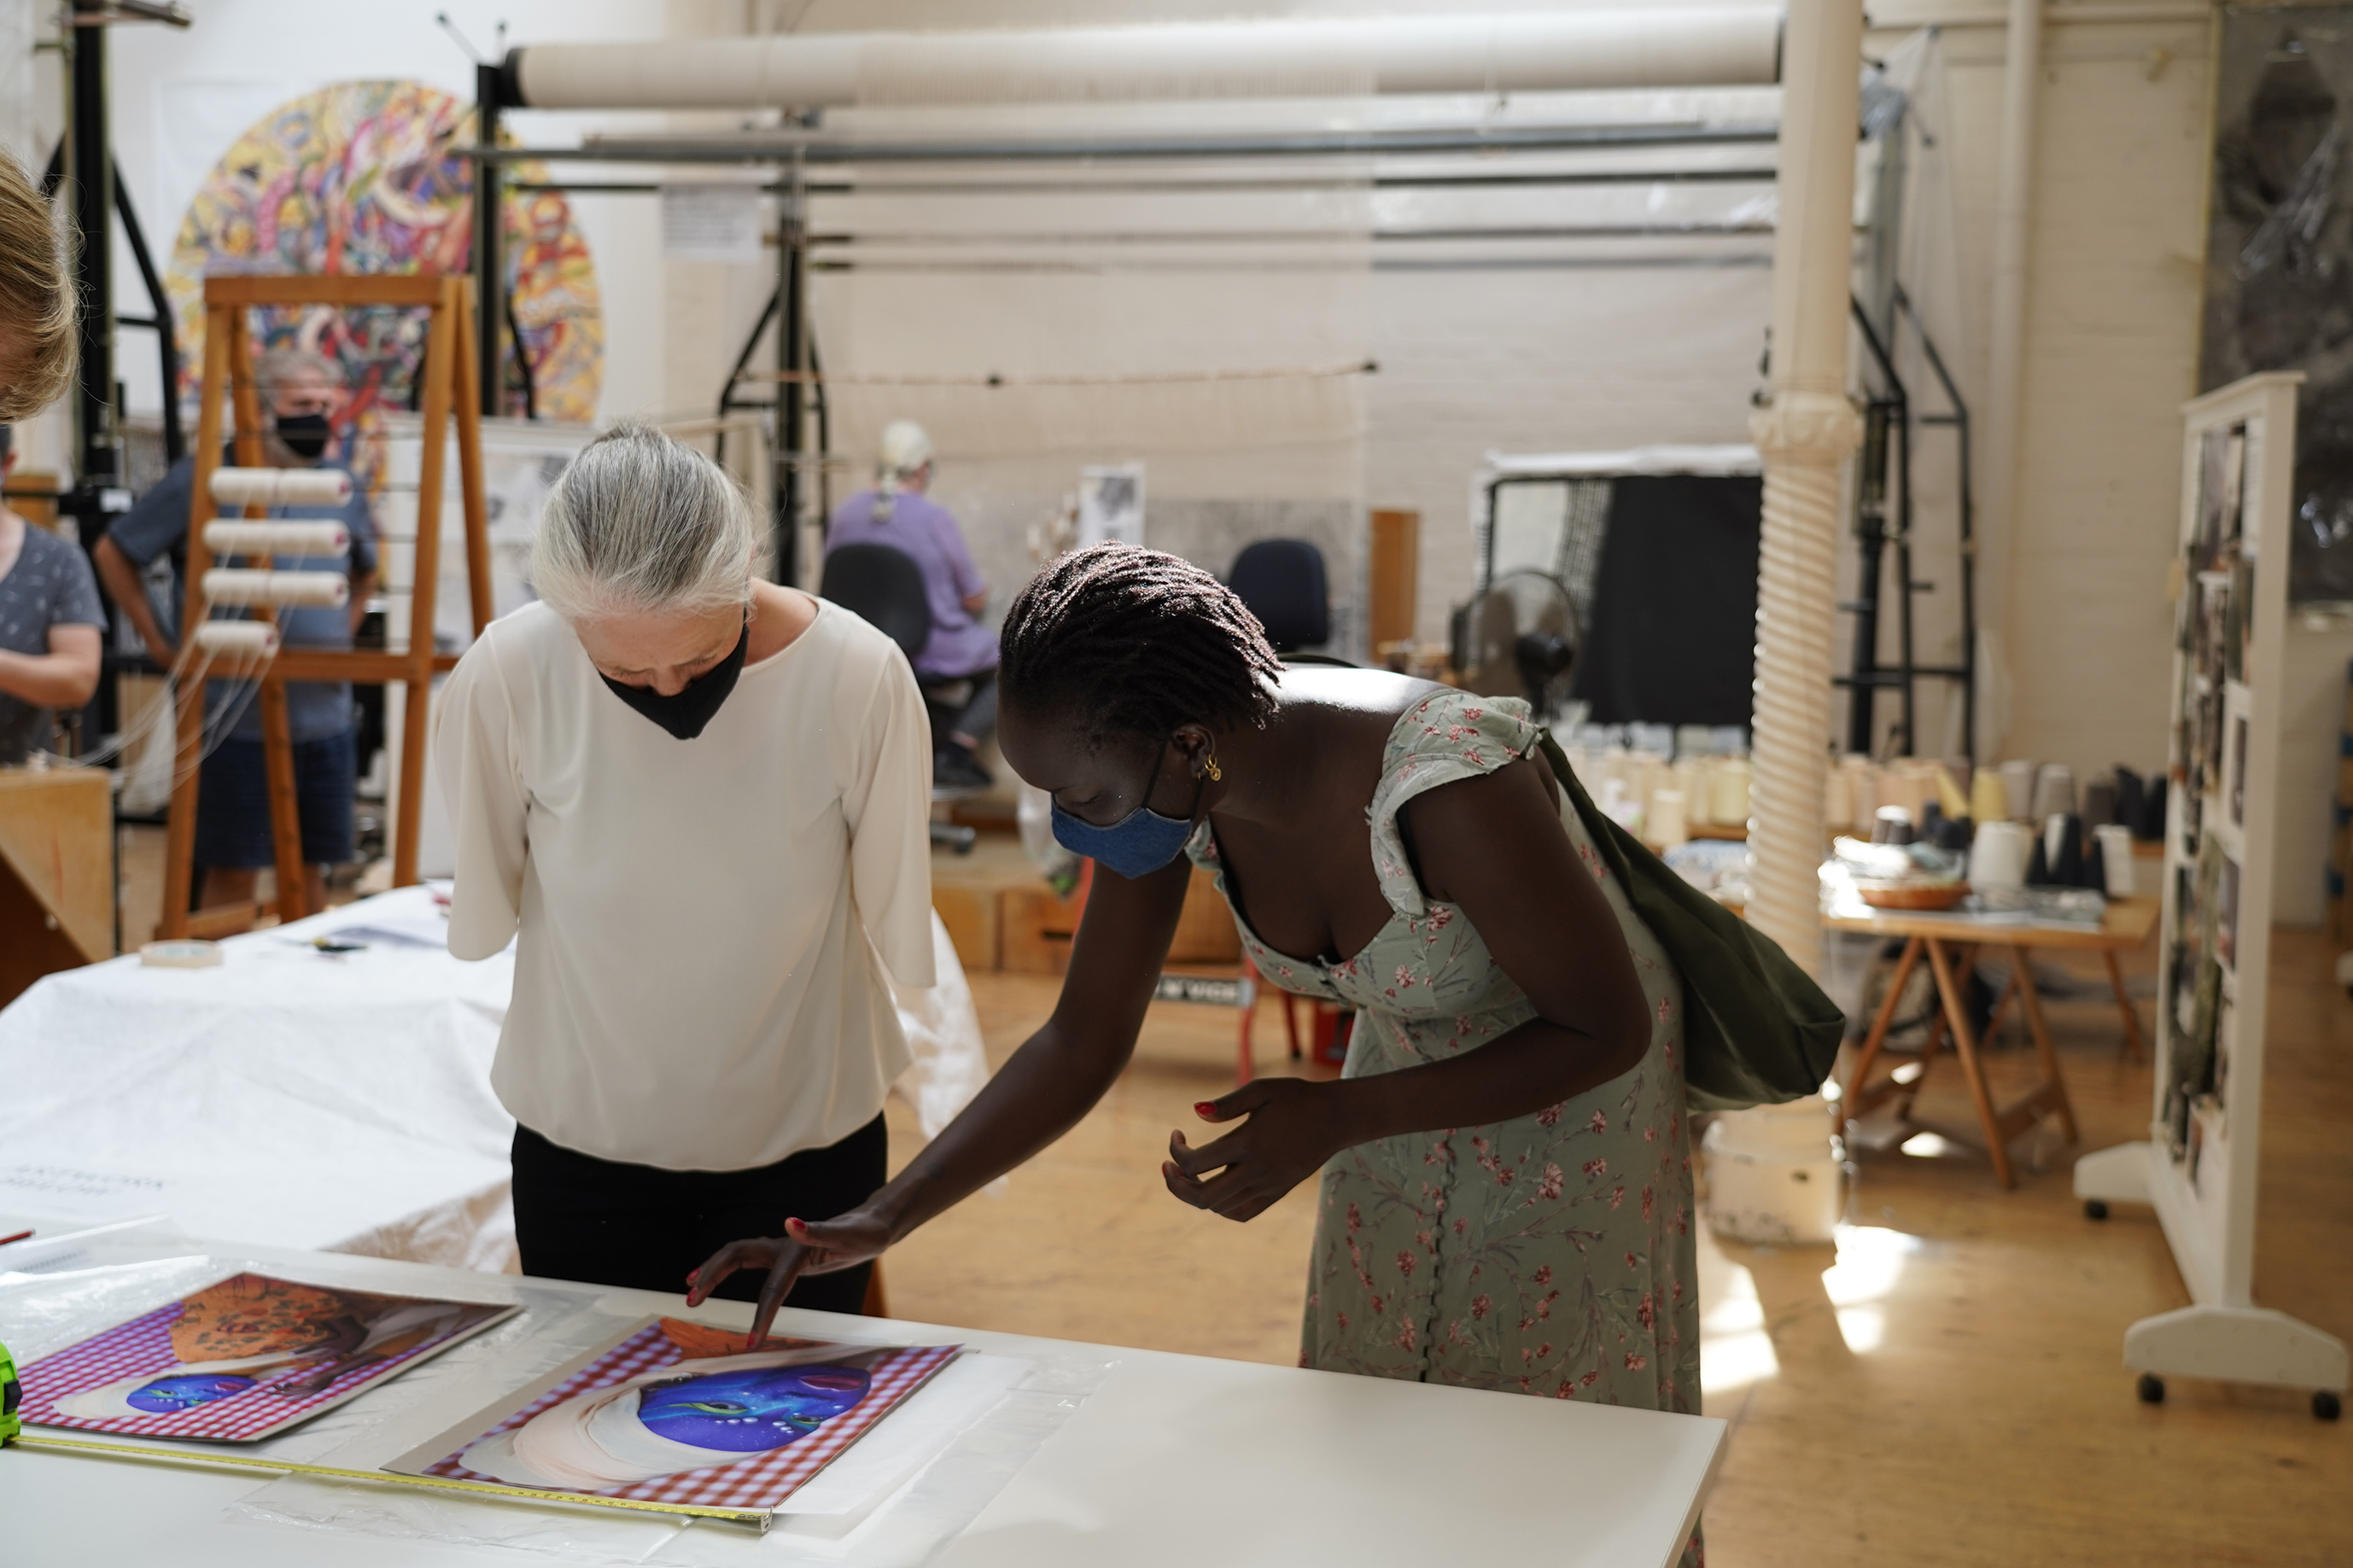 ATW weaver Pamela Joyce & artist Atong Atem discussing the 'Self Portrait in July (4)' tapestry design at the ATW, 2021. Image: ATW.